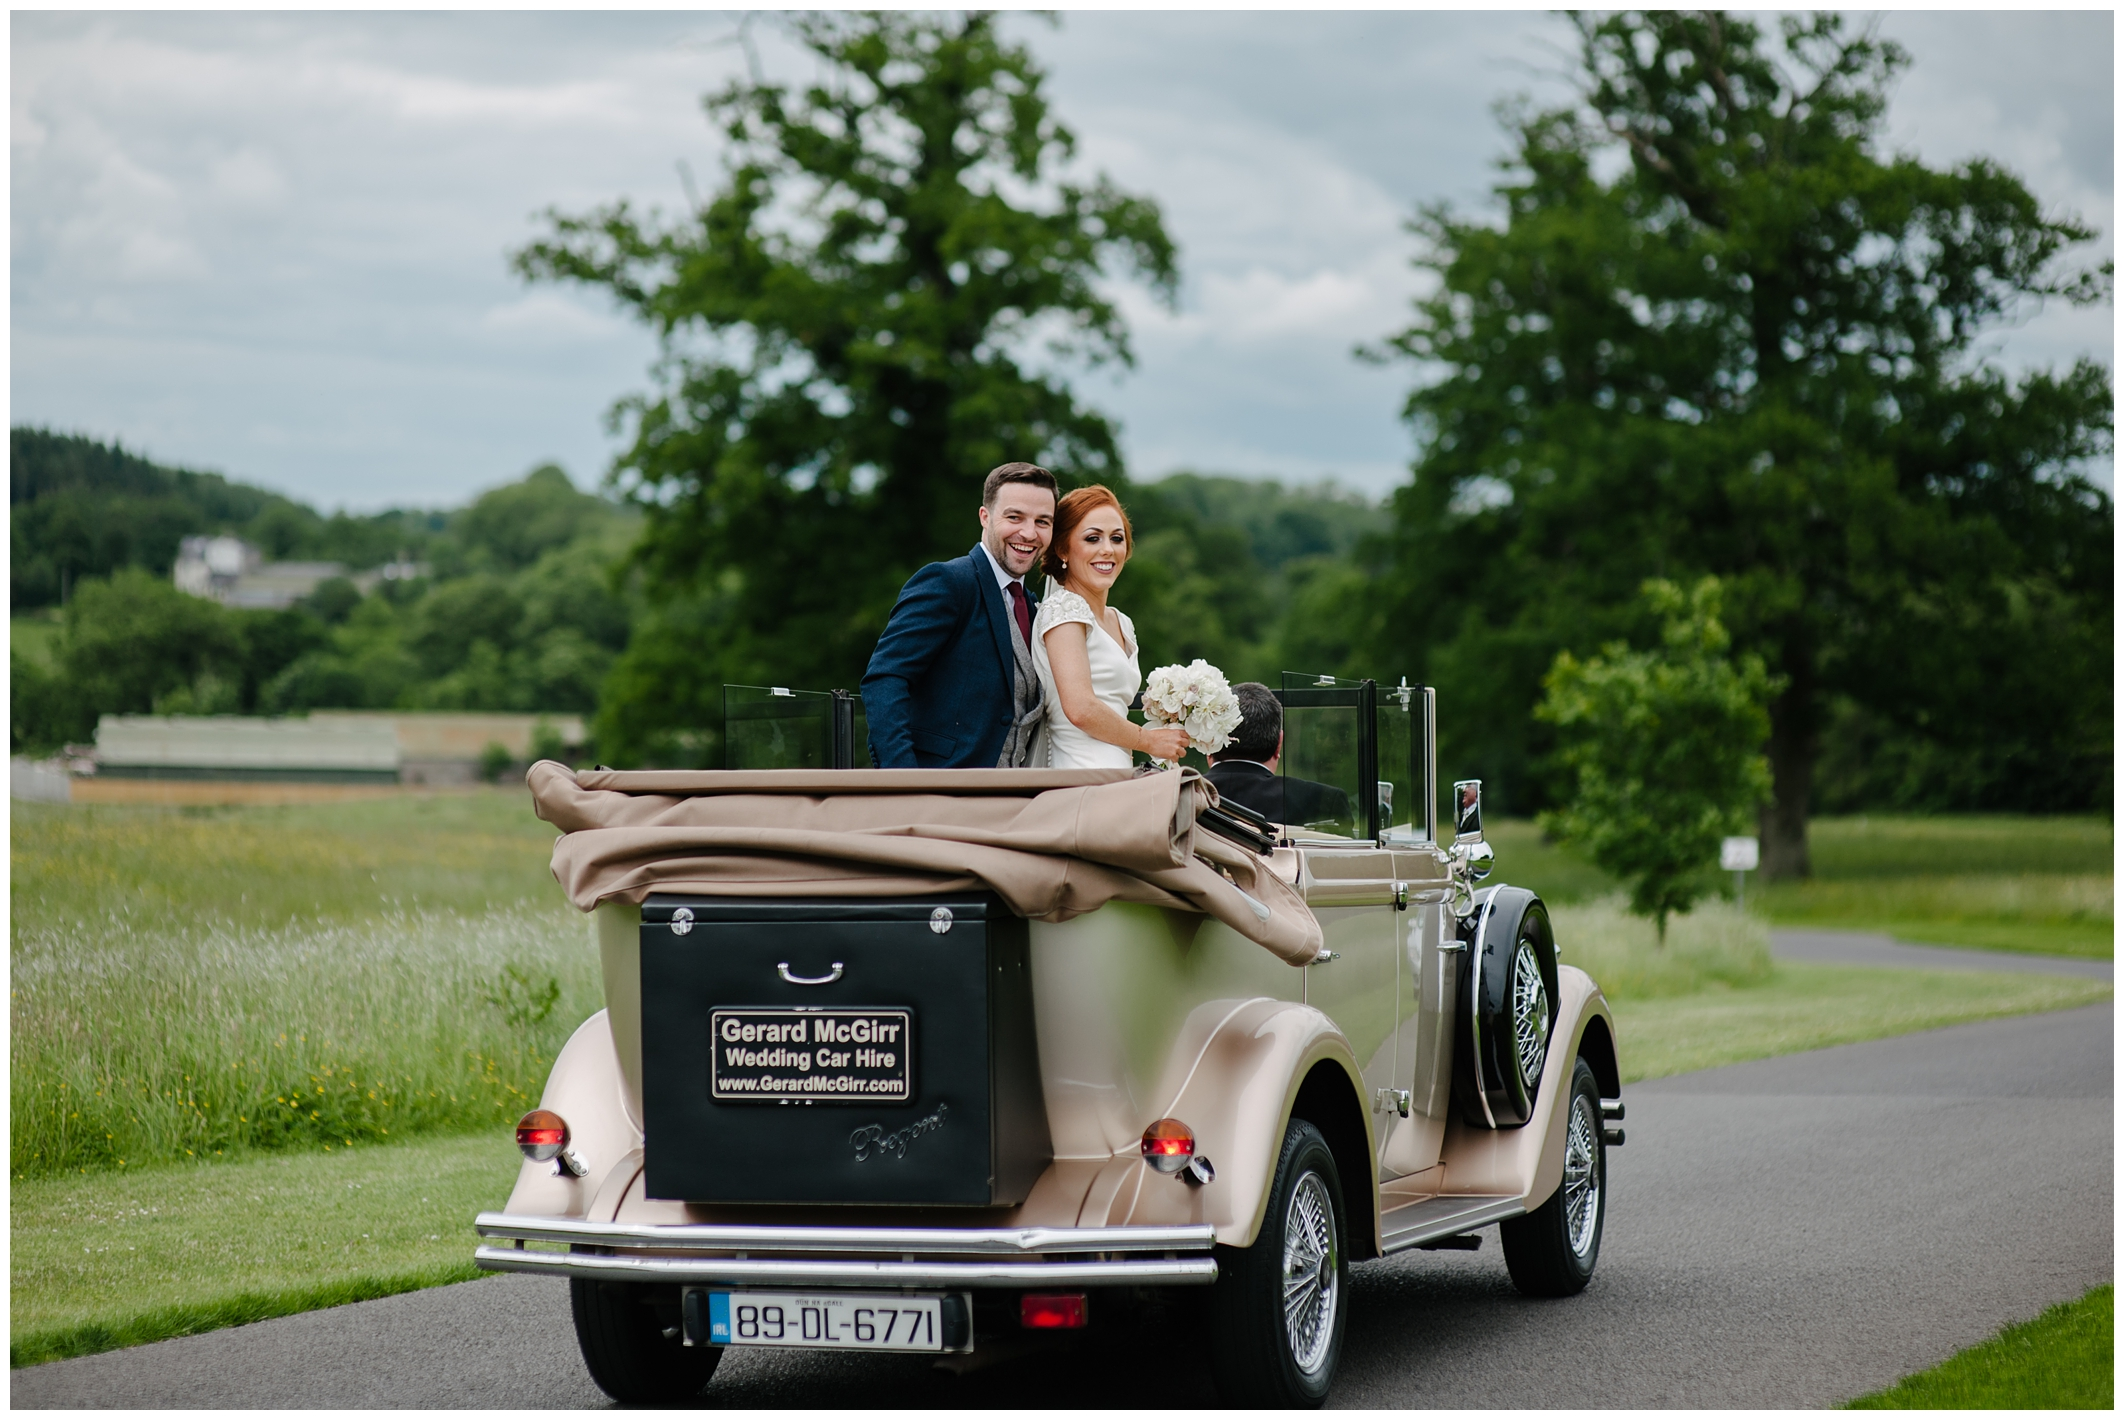 sinead_emmet_farnham_estate_wedding_jude_browne_photography_0089.jpg